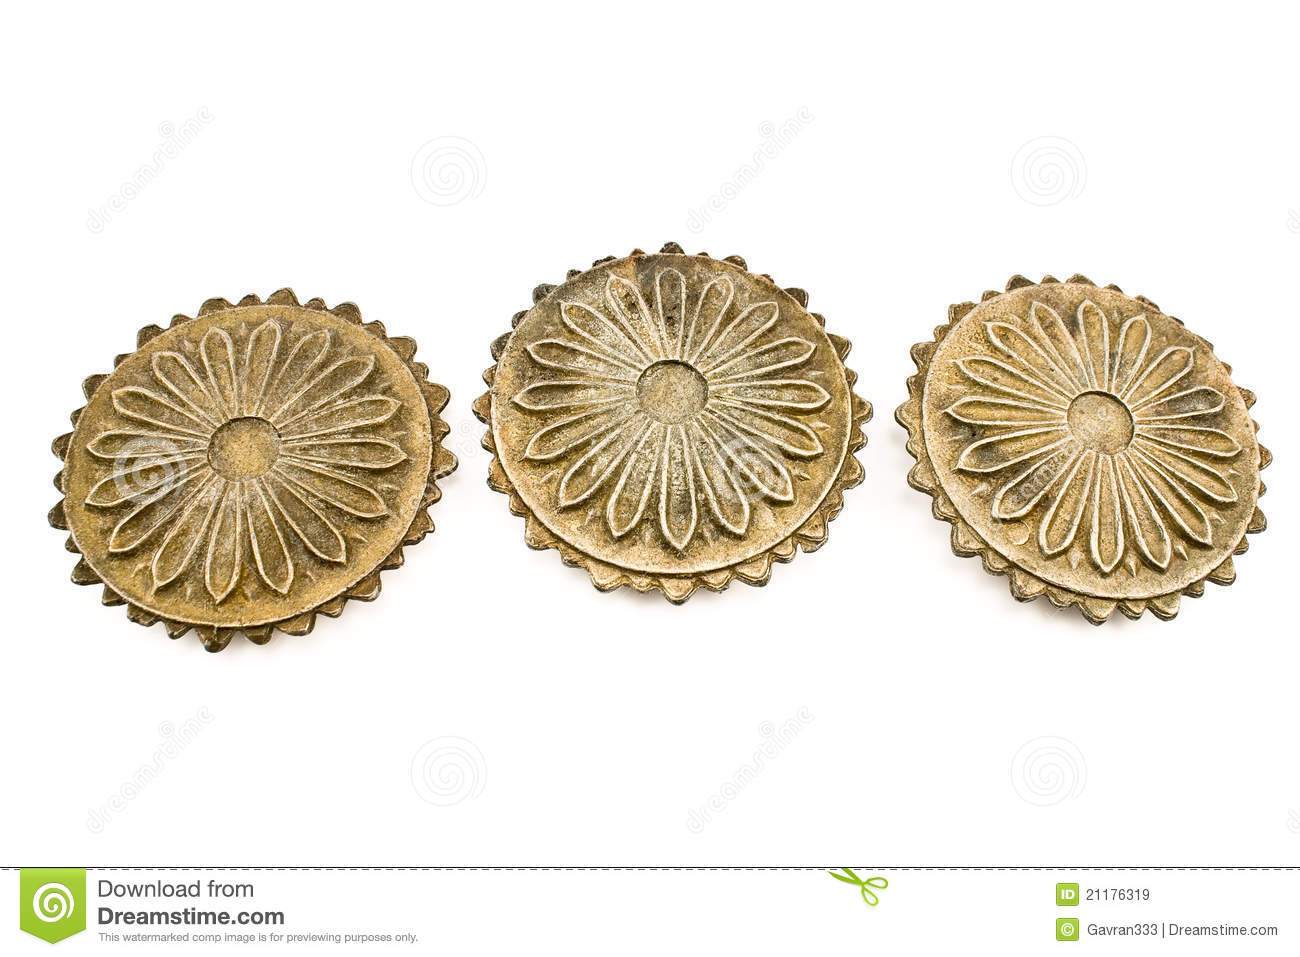 Three old metal ornament